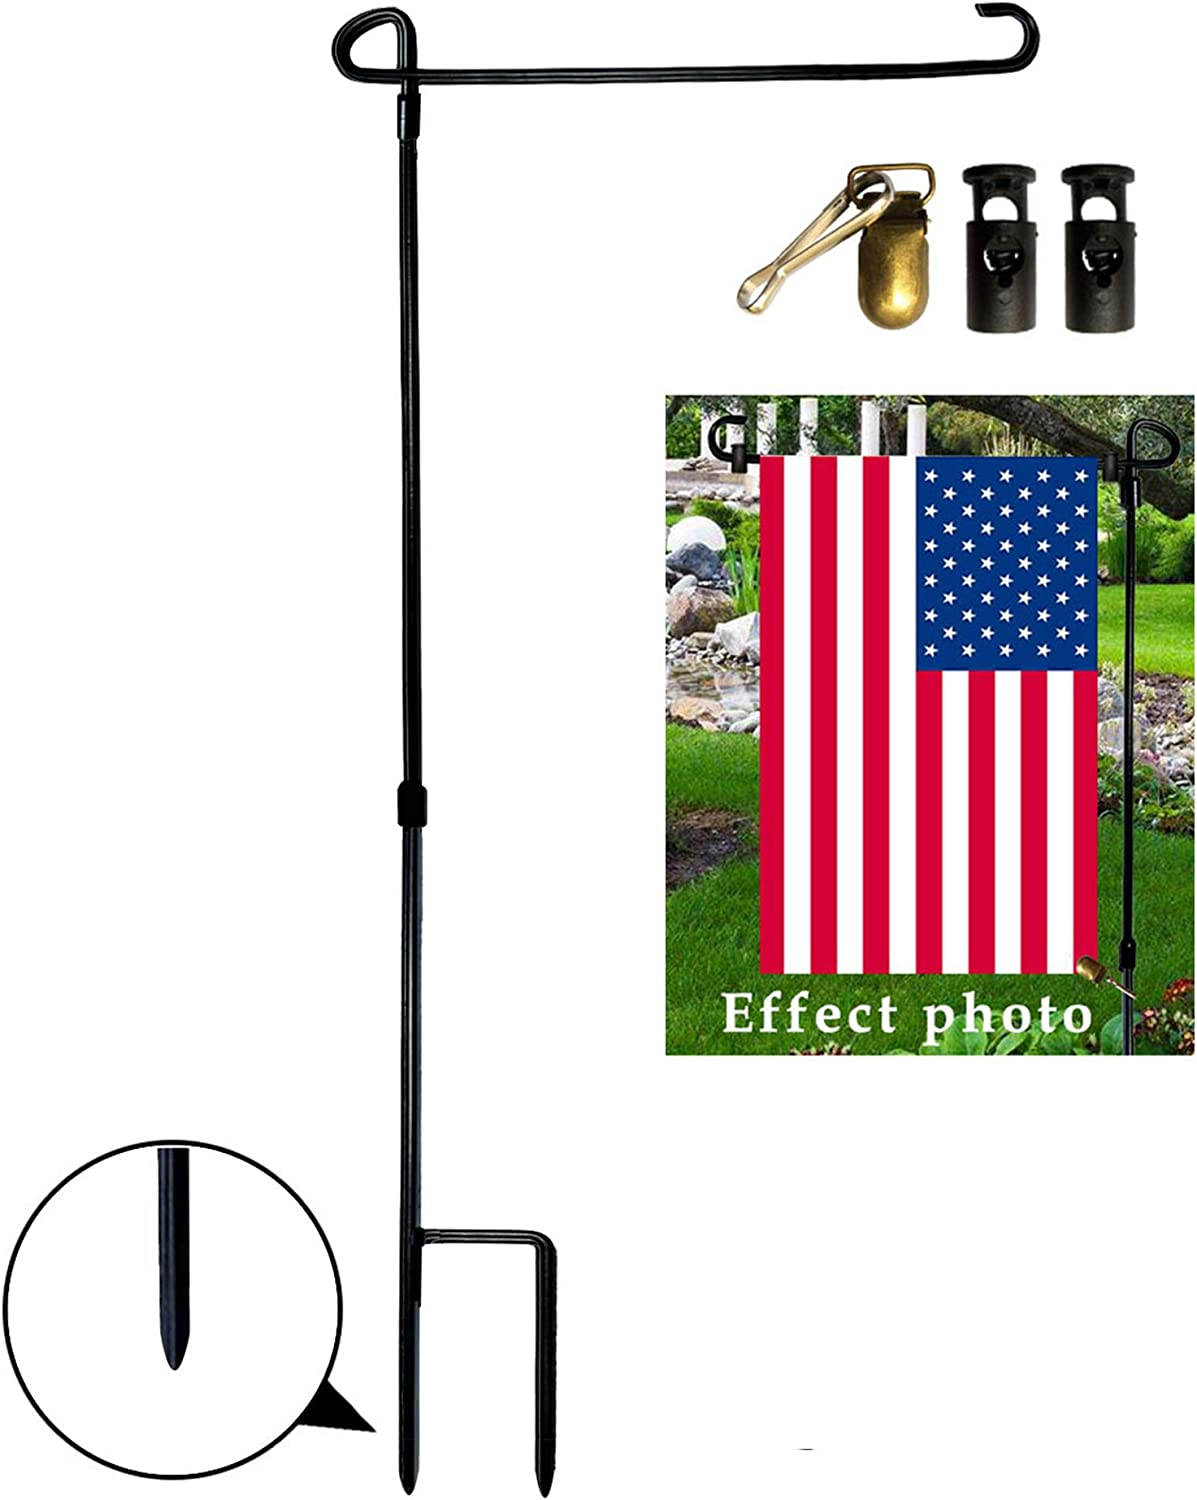 Garden Flag Stand Metal Outdoor Garden Flag Holder Stand with 9 Flag  Stoppers and 9 Metal Anti-wind Clip Garden Flag Holder Pole Powder-Coated